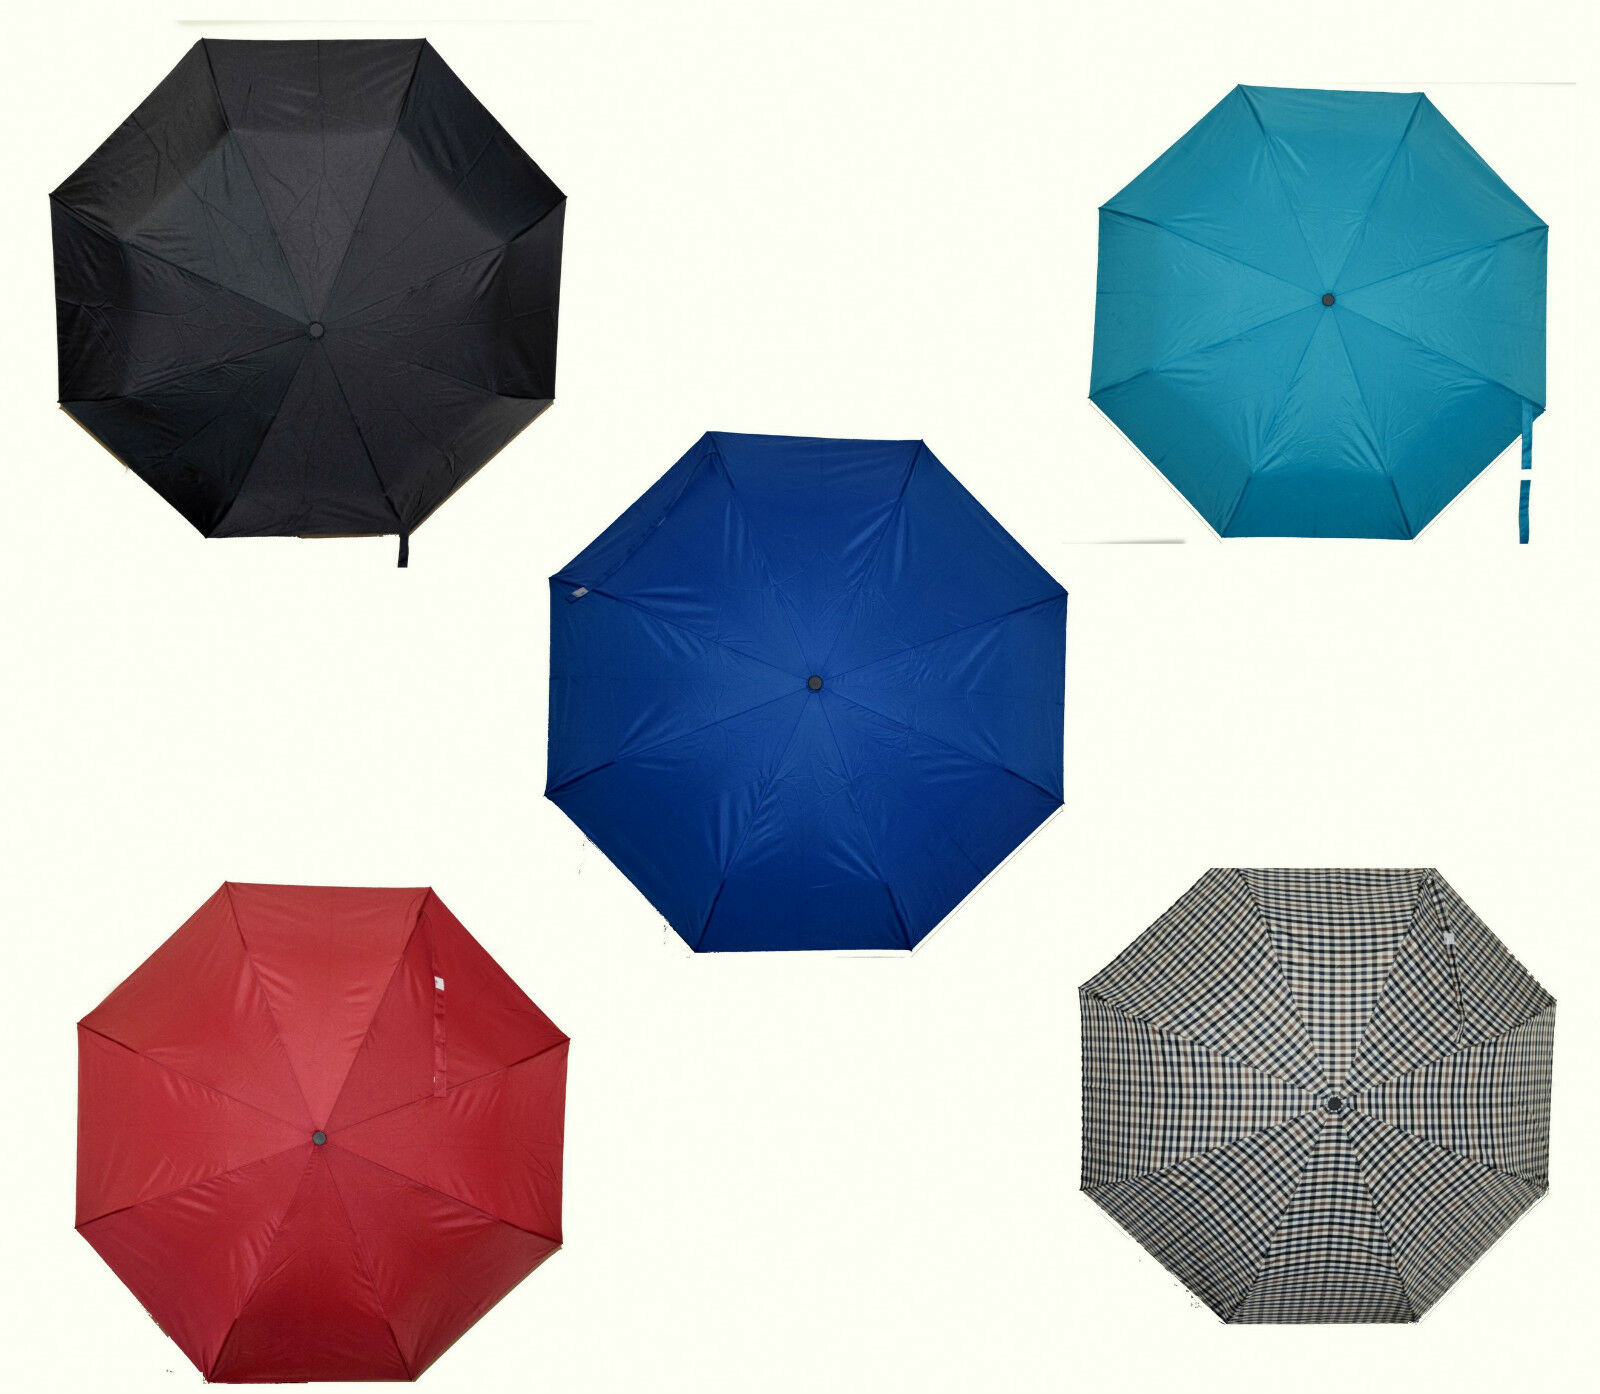 Fully Automatic Windproof Umbrella 3 fold Opens & Close Push Button Soft Grip